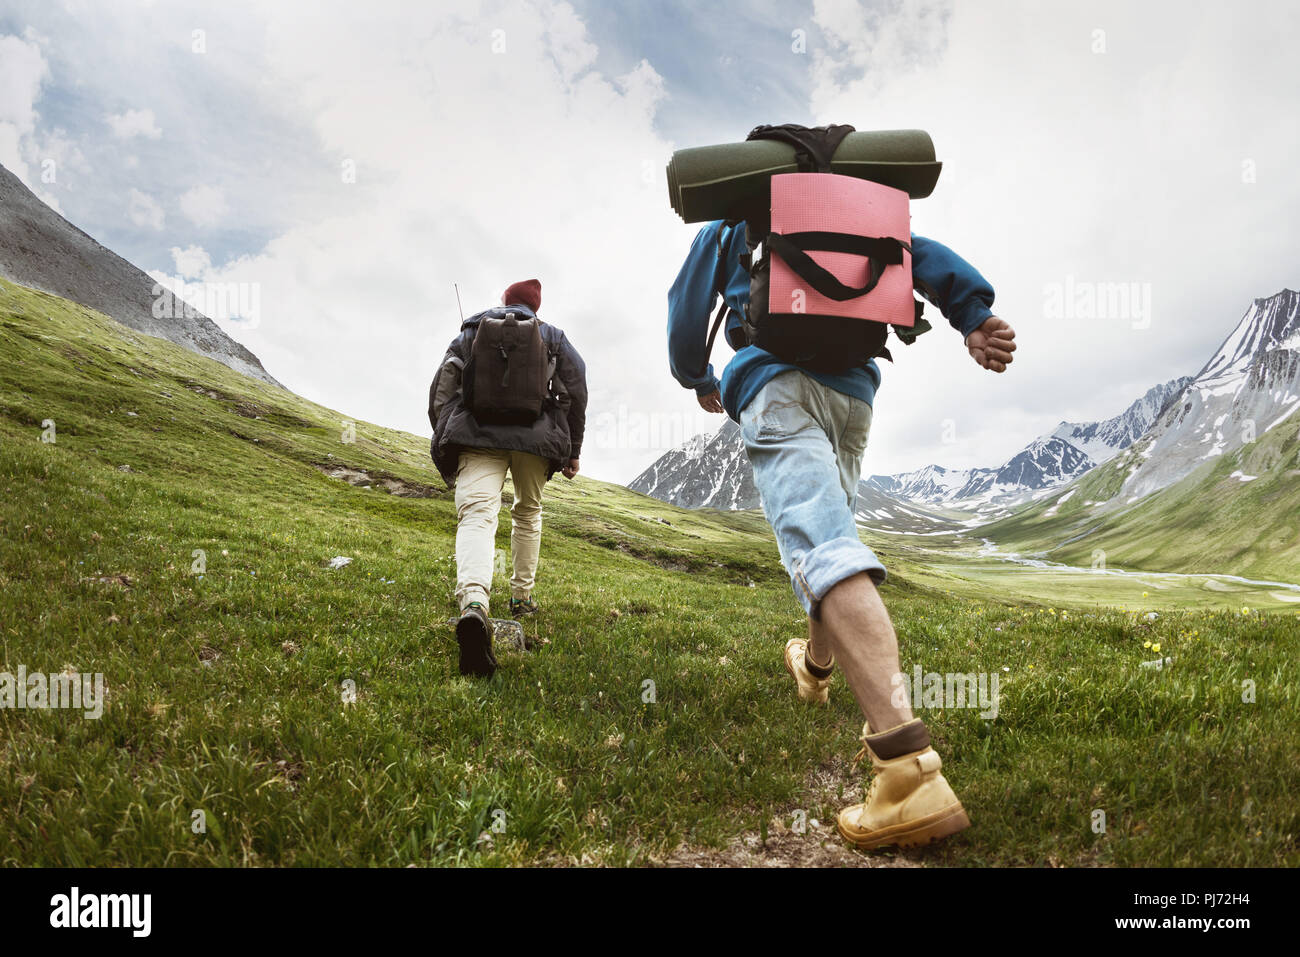 Touristen am trekking Route in die Berge Stockbild